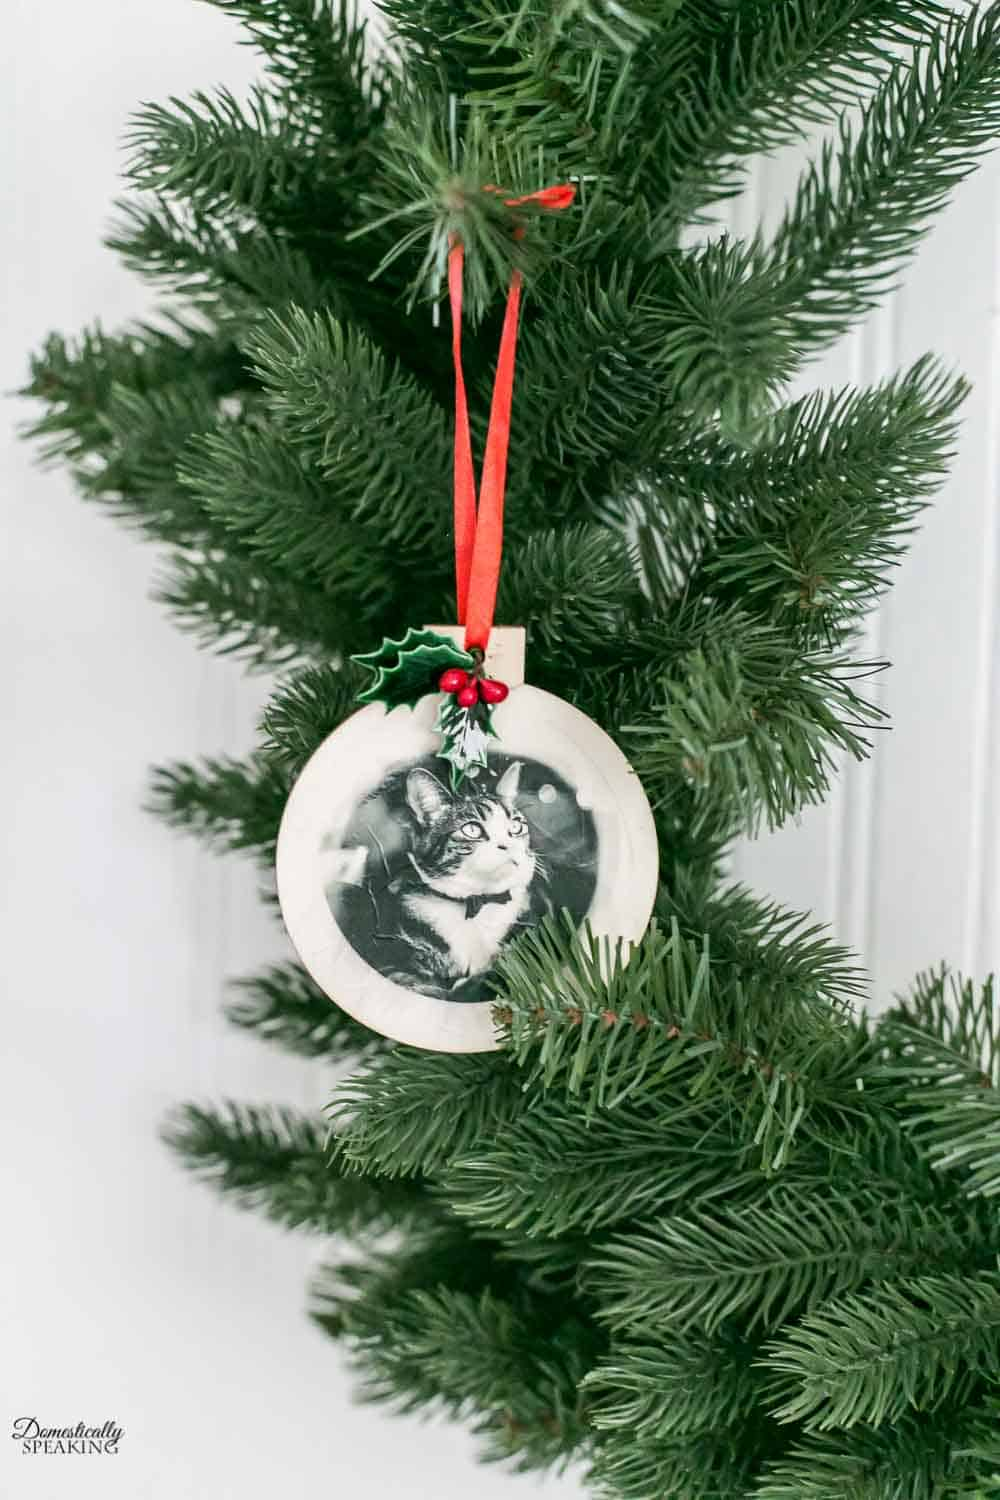 Tissue Paper Printed Christmas Ornaments make a great, sentimental gift - an easy Christmas craft that's budget friendly too.